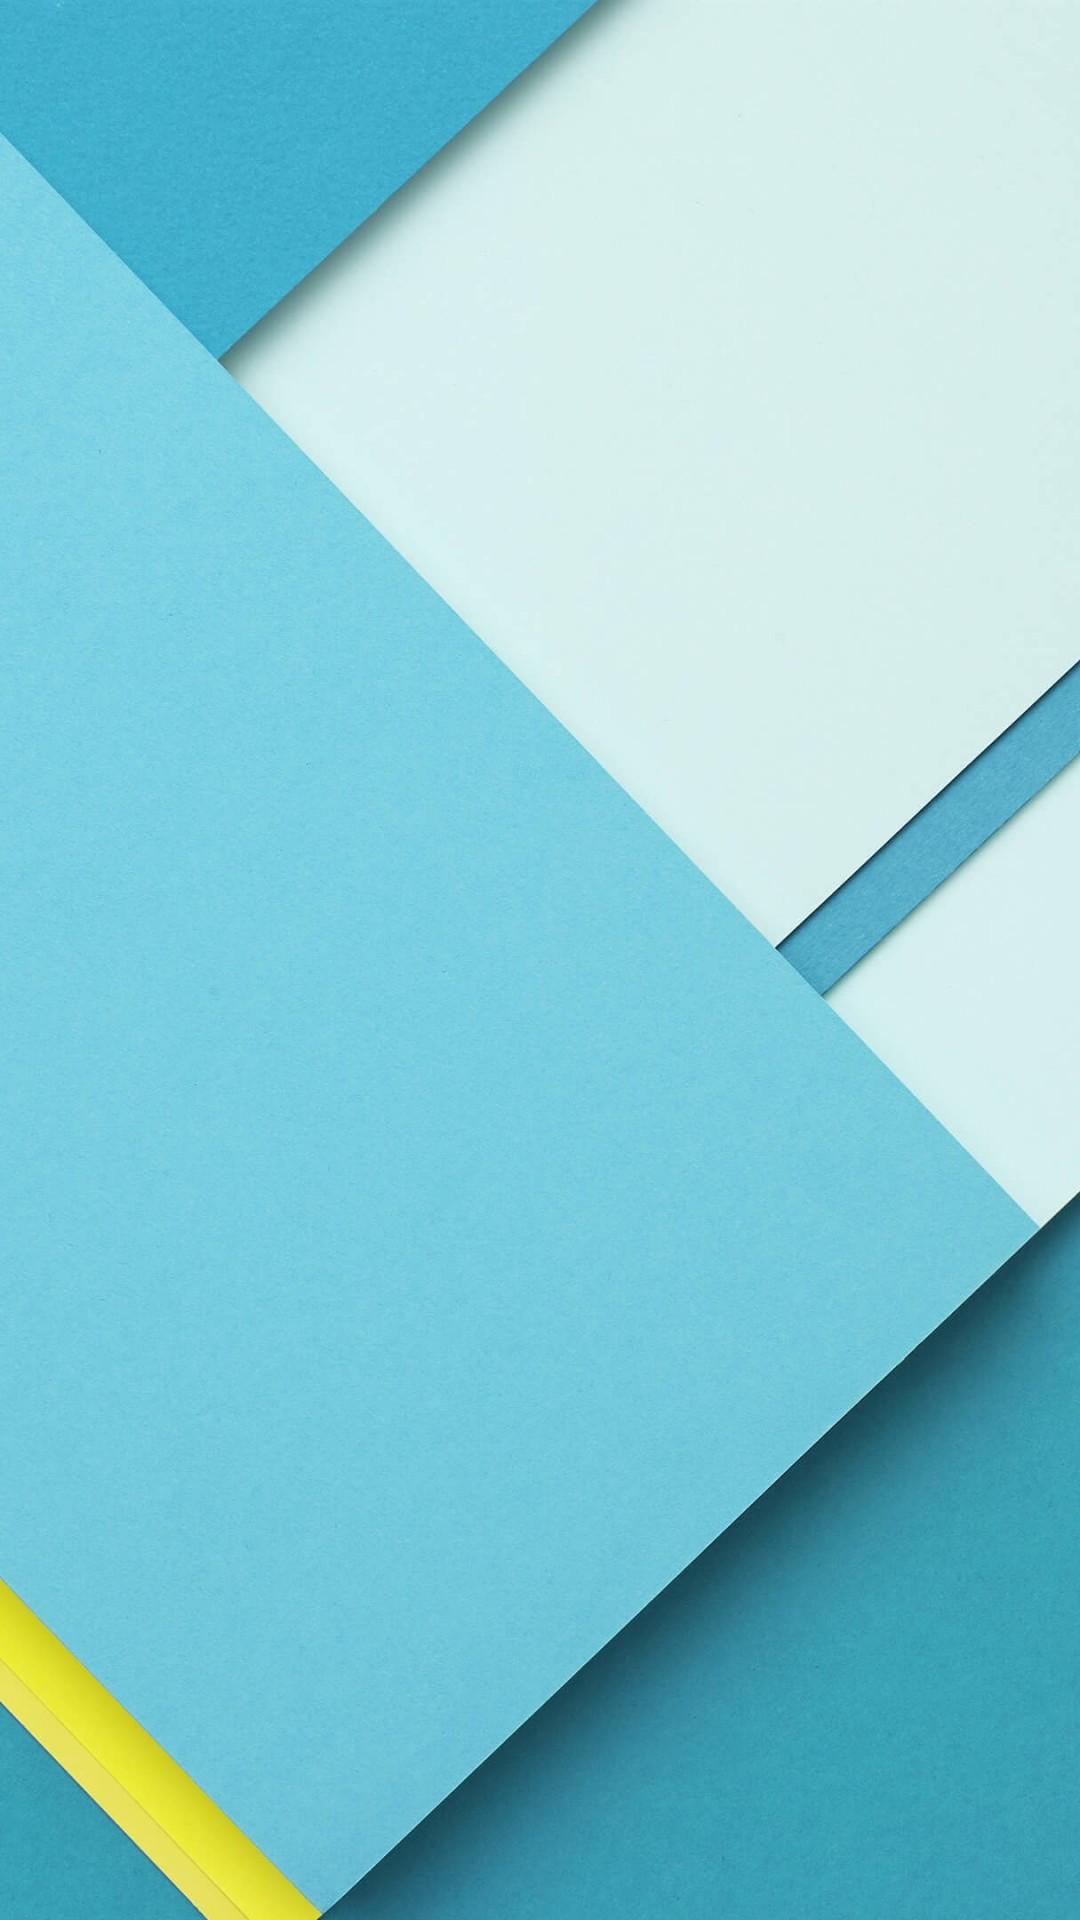 Google Material Design Wallpaper for SAMSUNG Galaxy S4